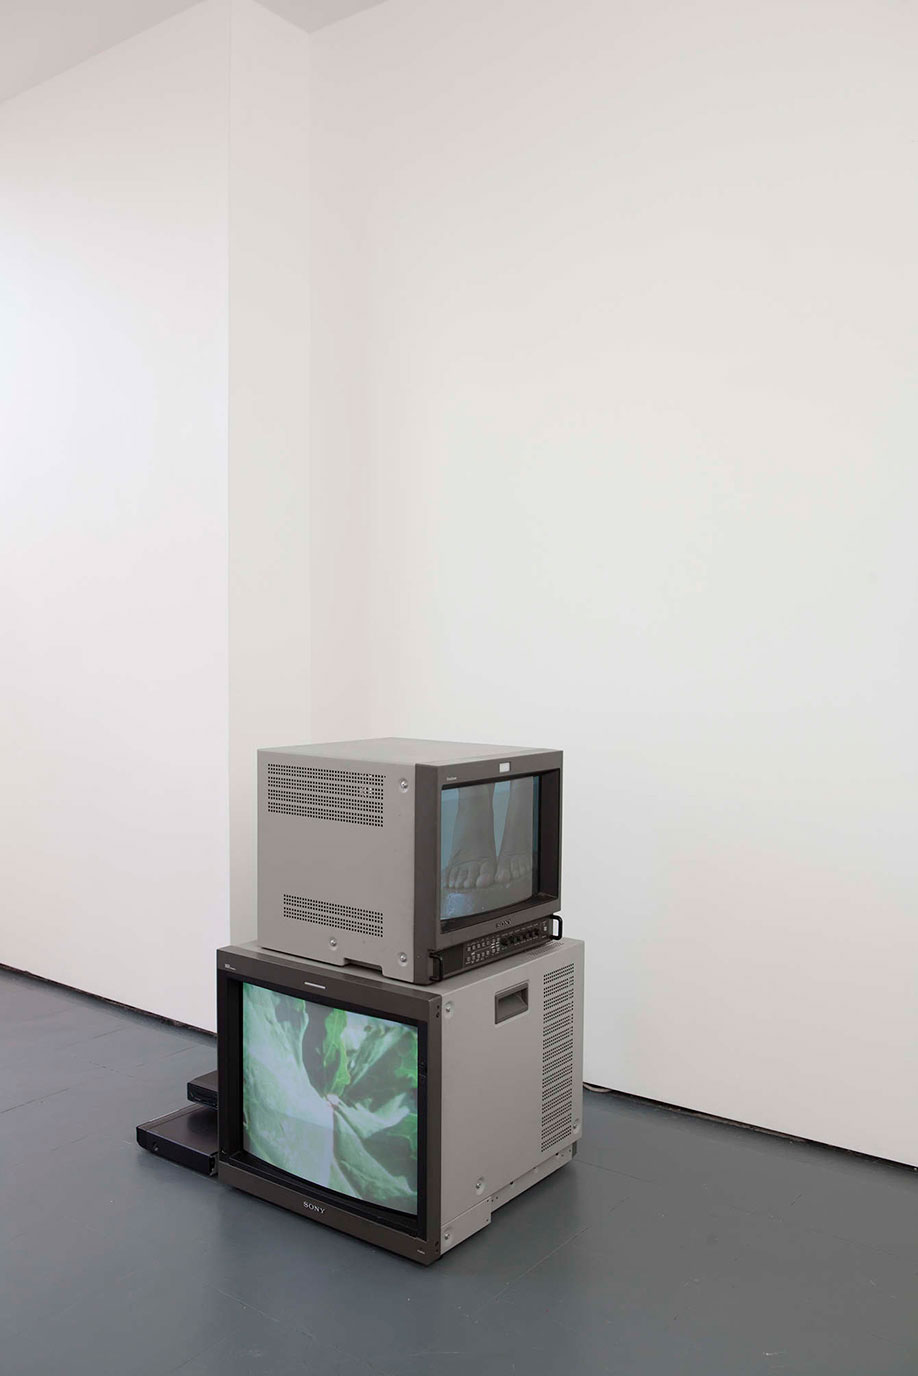 <b>Title:</b>Hold Me Tight And Let Me Go<br /><b>Year:</b>2013<br /><b>Medium:</b>Two channel video and box monitors<br /><b>Size:</b>Dimensions variable